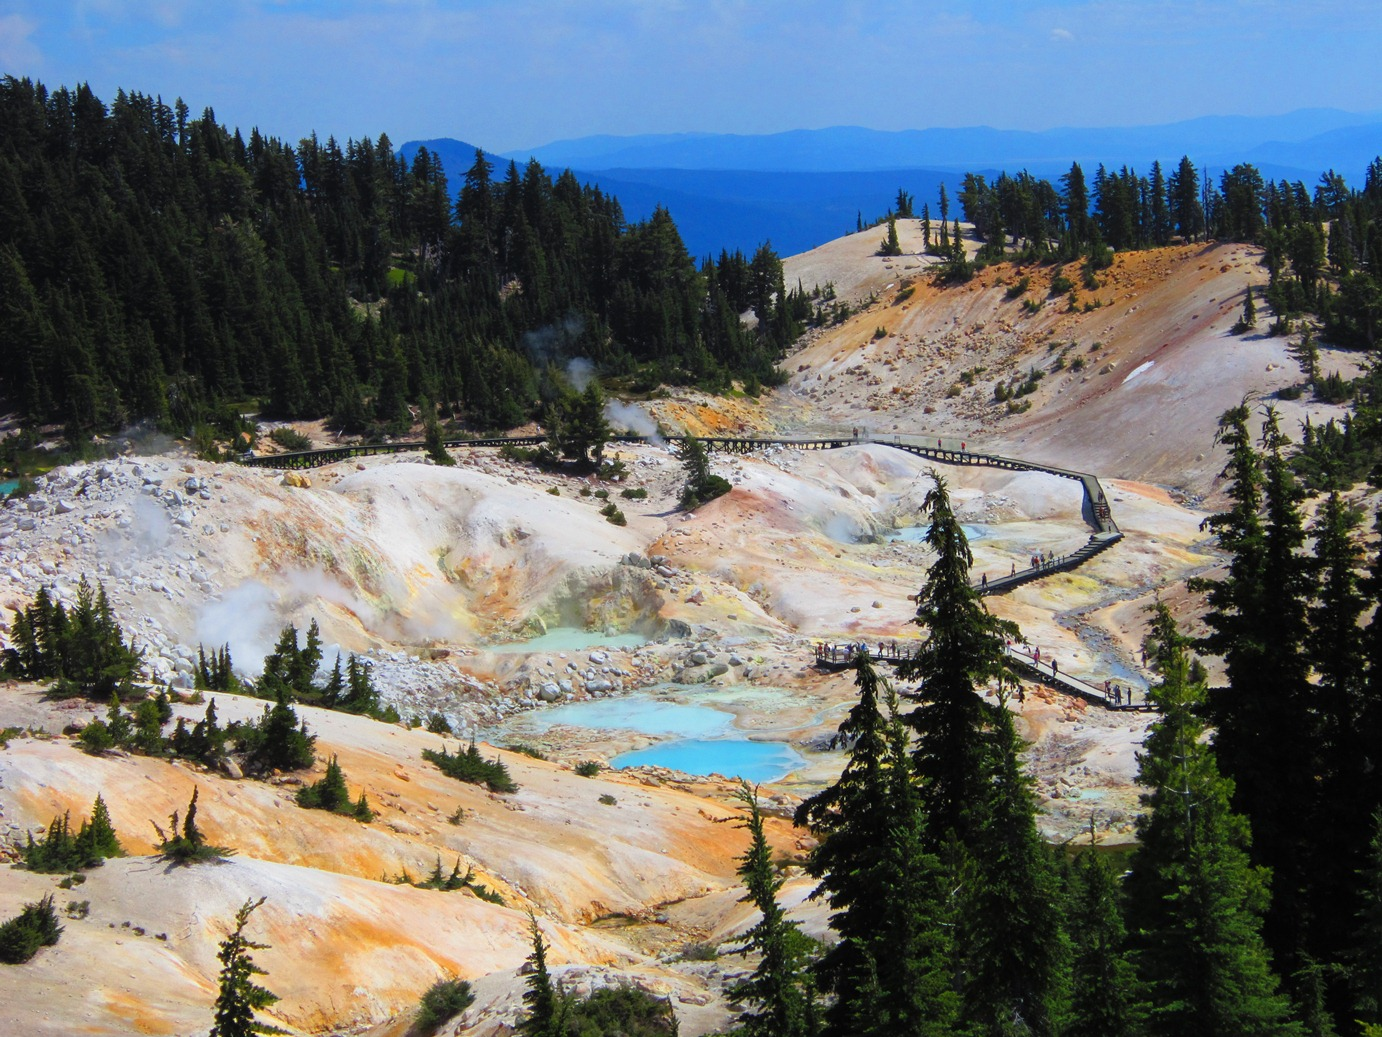 Bumpass-hell-from-entrance